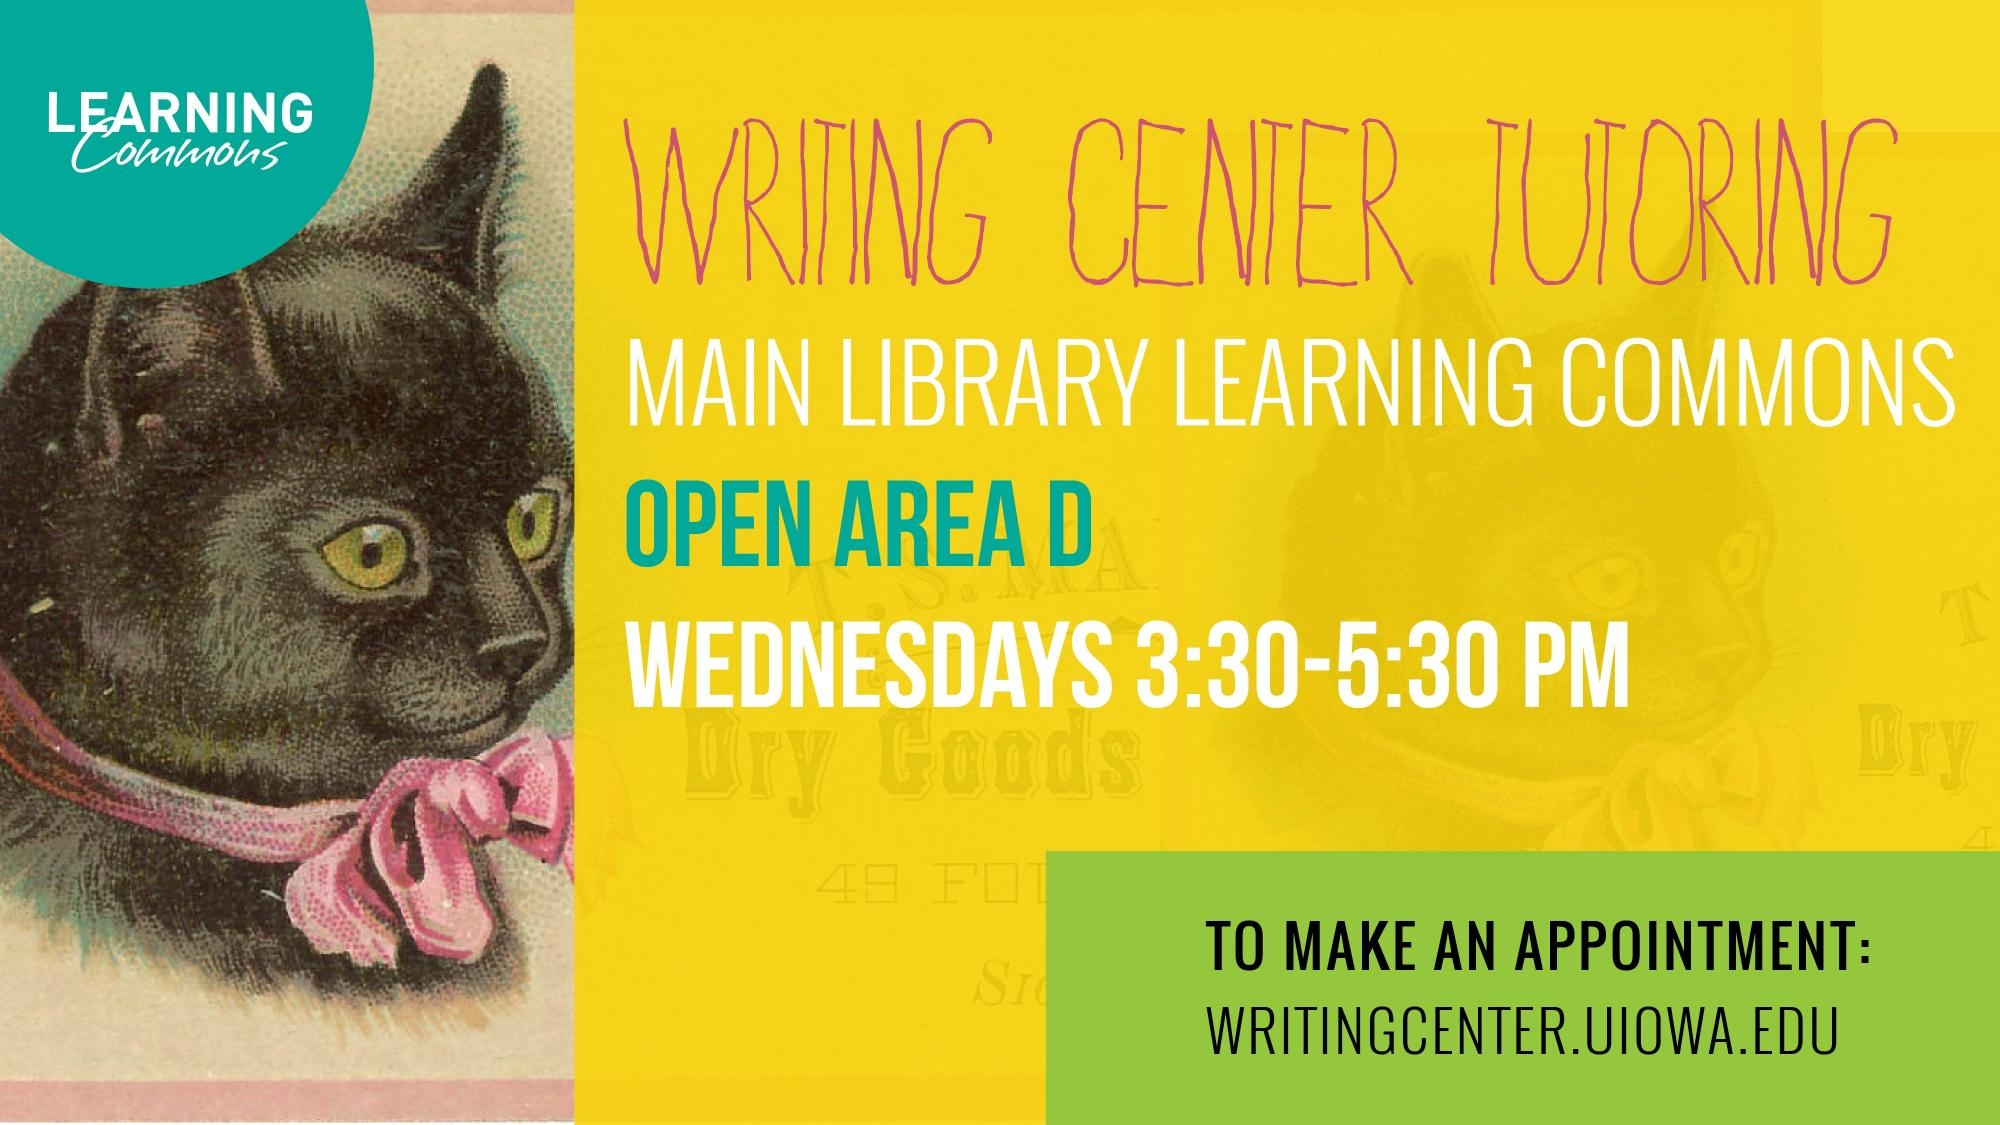 Writing Center Tutoring Wednesdays 3:30-5:30pm in Open Area D in the Main Library Learning Commons. To make an appointment go to writingcenter.uiowa.edu